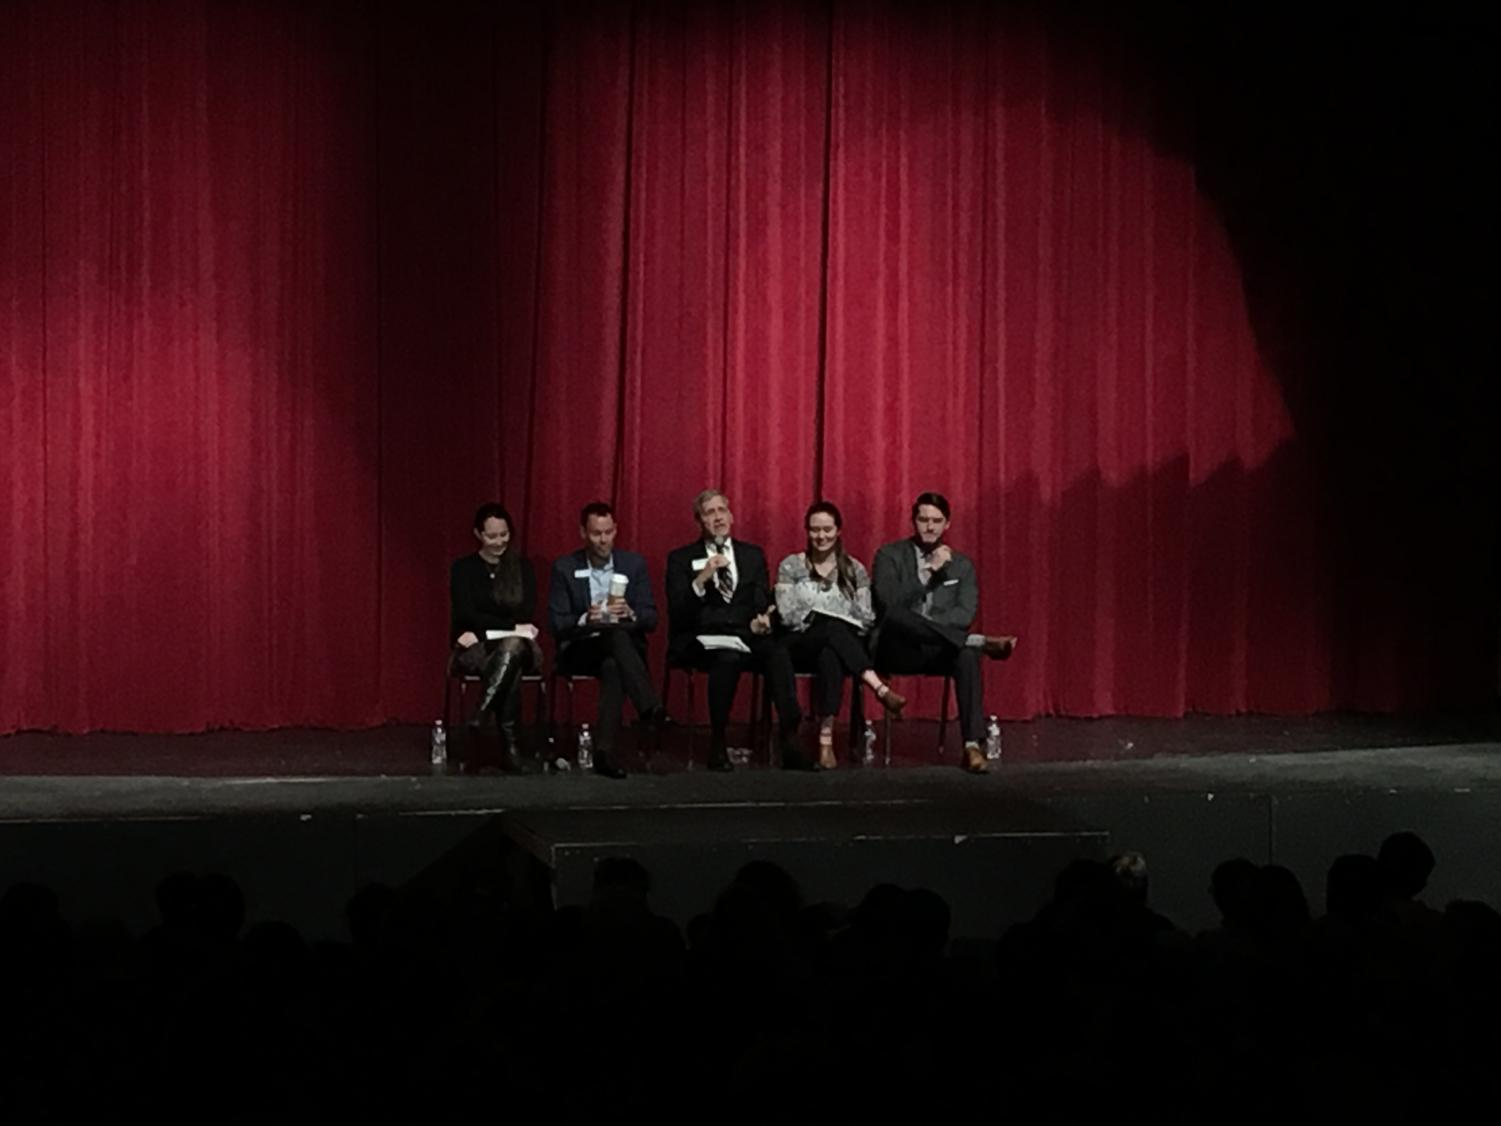 The panel of admissions officers shared advice that pertained to selecting and applying to colleges.